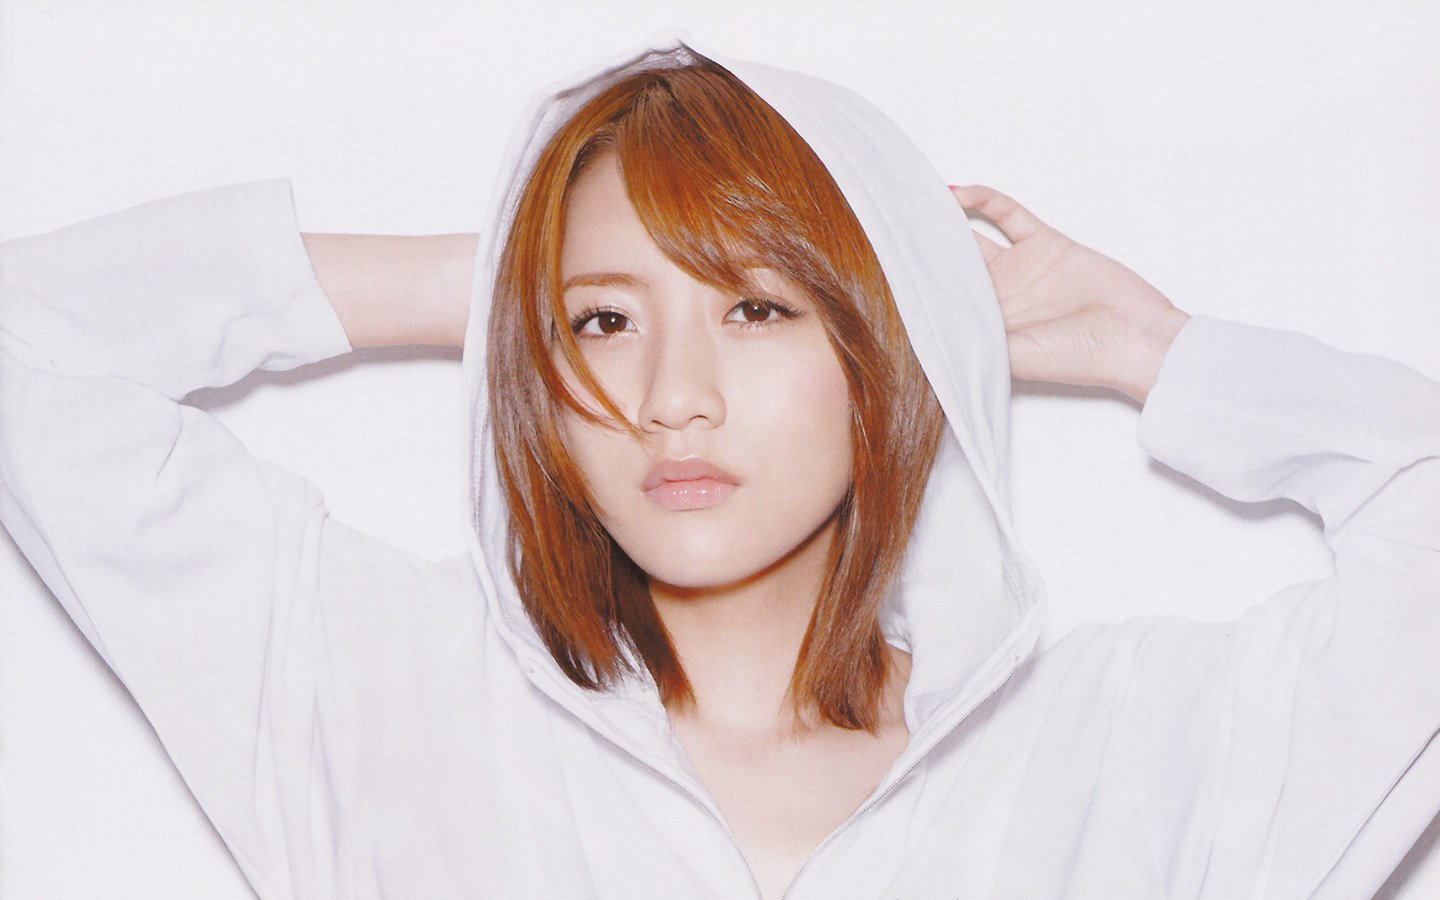 img 5a6c8d8d1316b.png?resize=1200,630 - akb48・高橋みなみの卒業後は?激やせで心配の声も!?